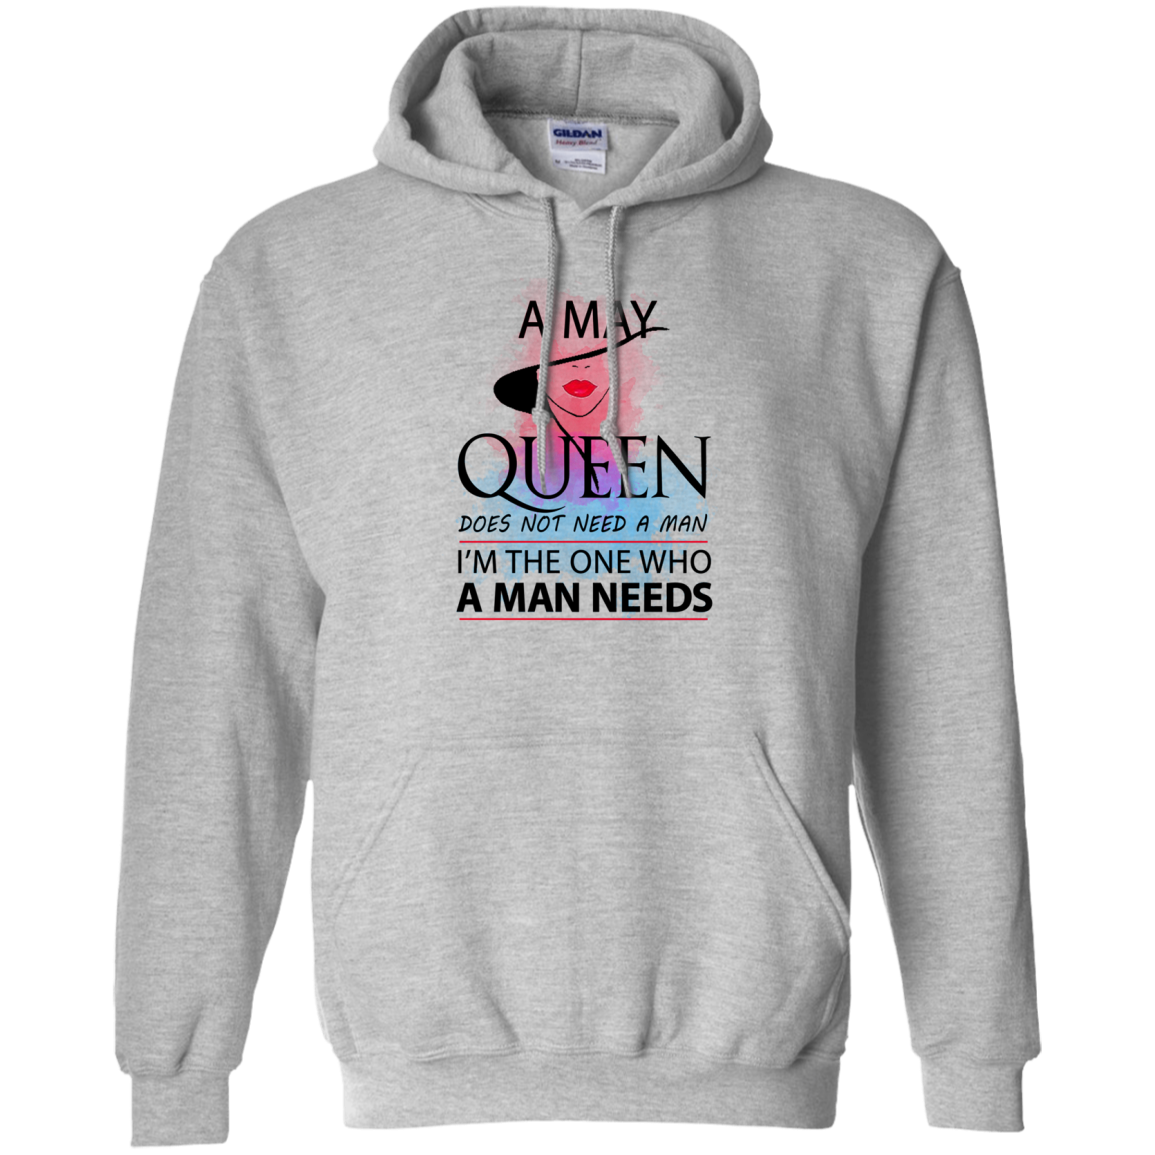 A May Queen does not need a man I'm the one who a man needs T shirt Hoodie Sweater Hoodie